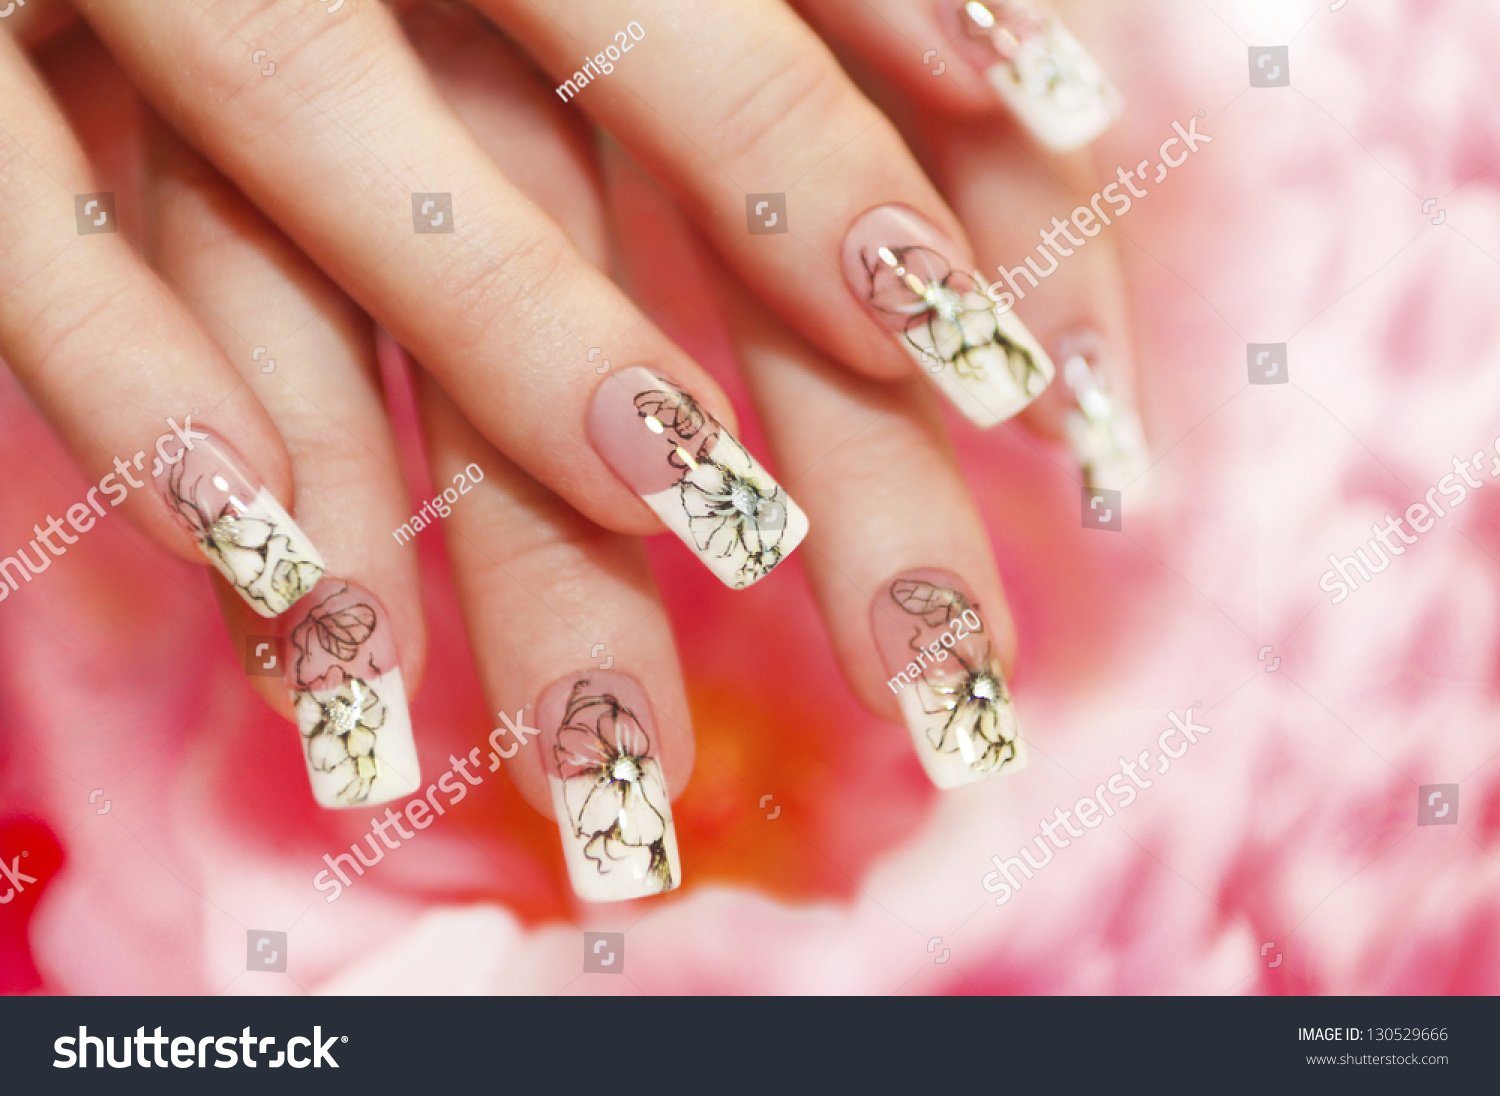 Floral French Manicure On Pink White Stock Photo (Royalty Free ...